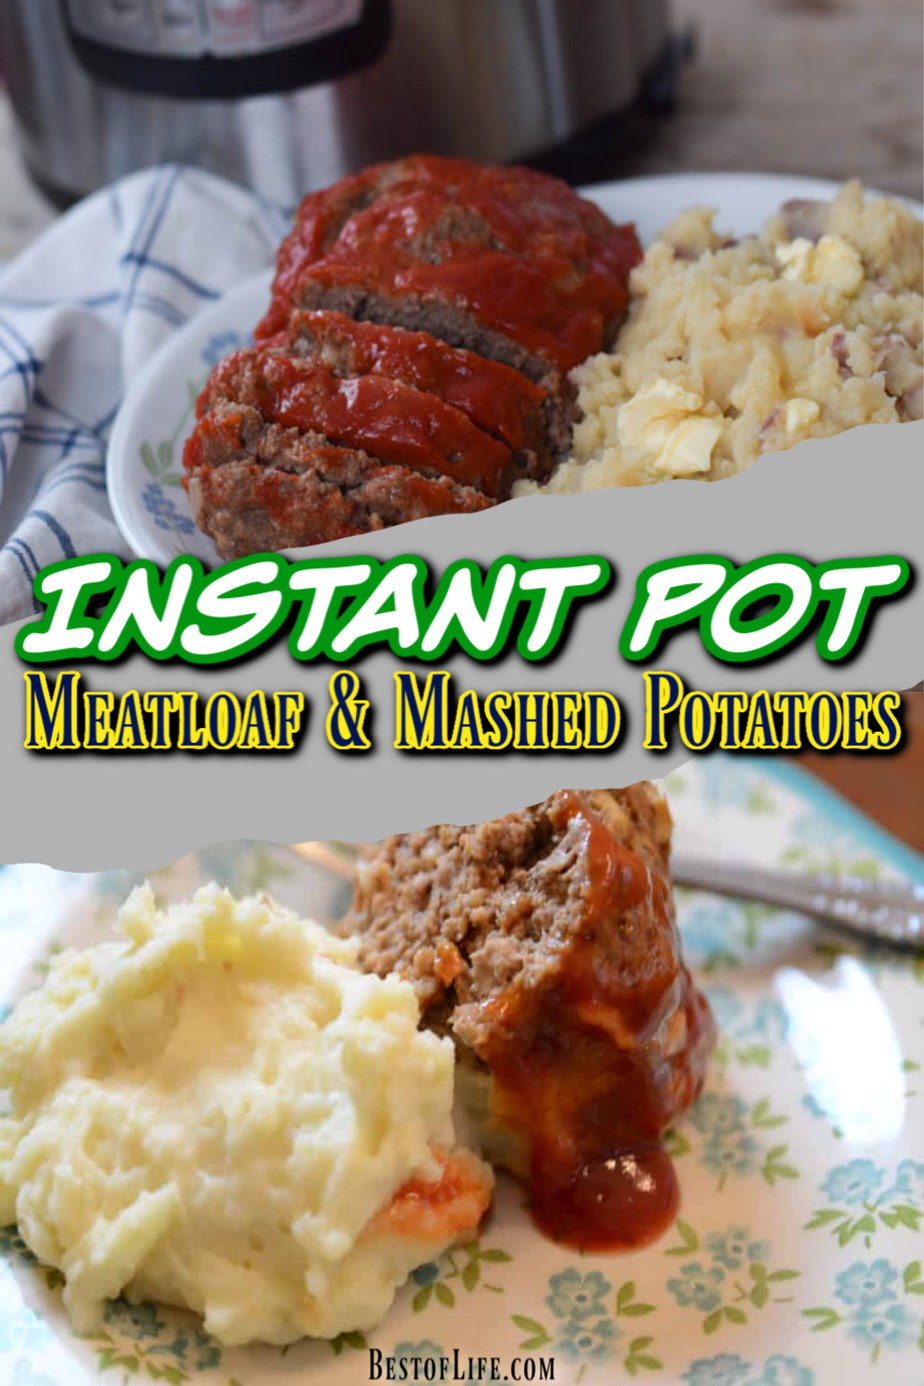 Instant pot meatloaf and mashed potatoes are the definitions of comfort food for many families and you can make these easy recipes when you are short on time. Instant Pot Family Dinner Recipes | Meatloaf Recipes | Instant Pot Dinner Recipes | Instant Pot Mashed Potatoes Recipes #instantpot #recipes via @thebestoflife